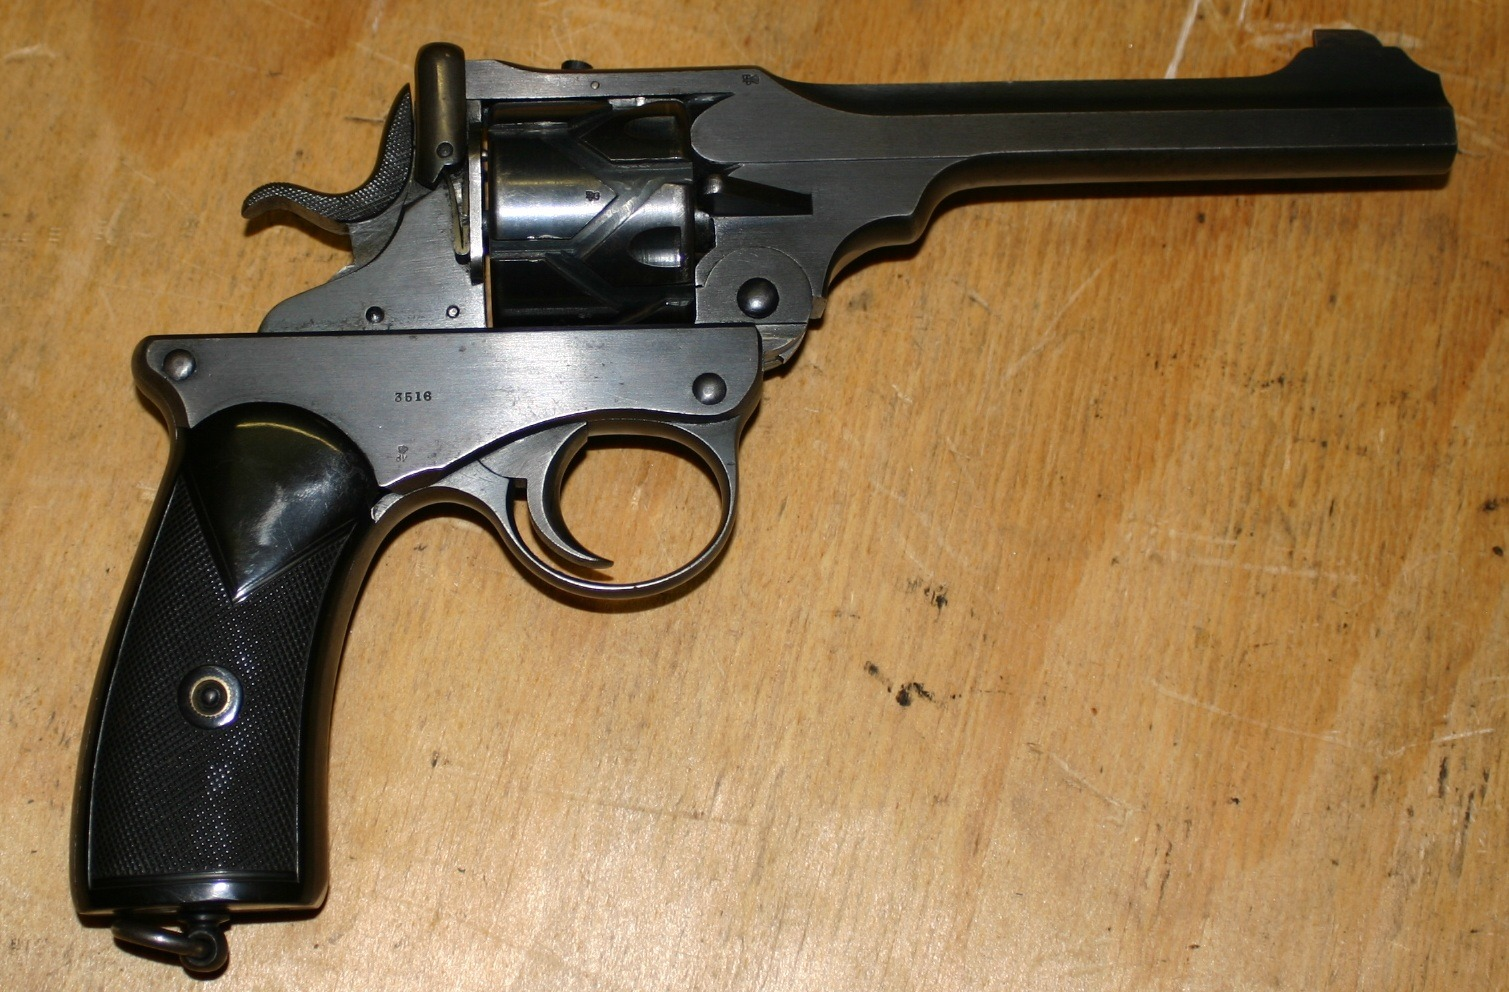 The Webley Fosberry revolver. The only revolver ever chambered for the 38ACP. (Picture courtesy of forgottenweapons.com).